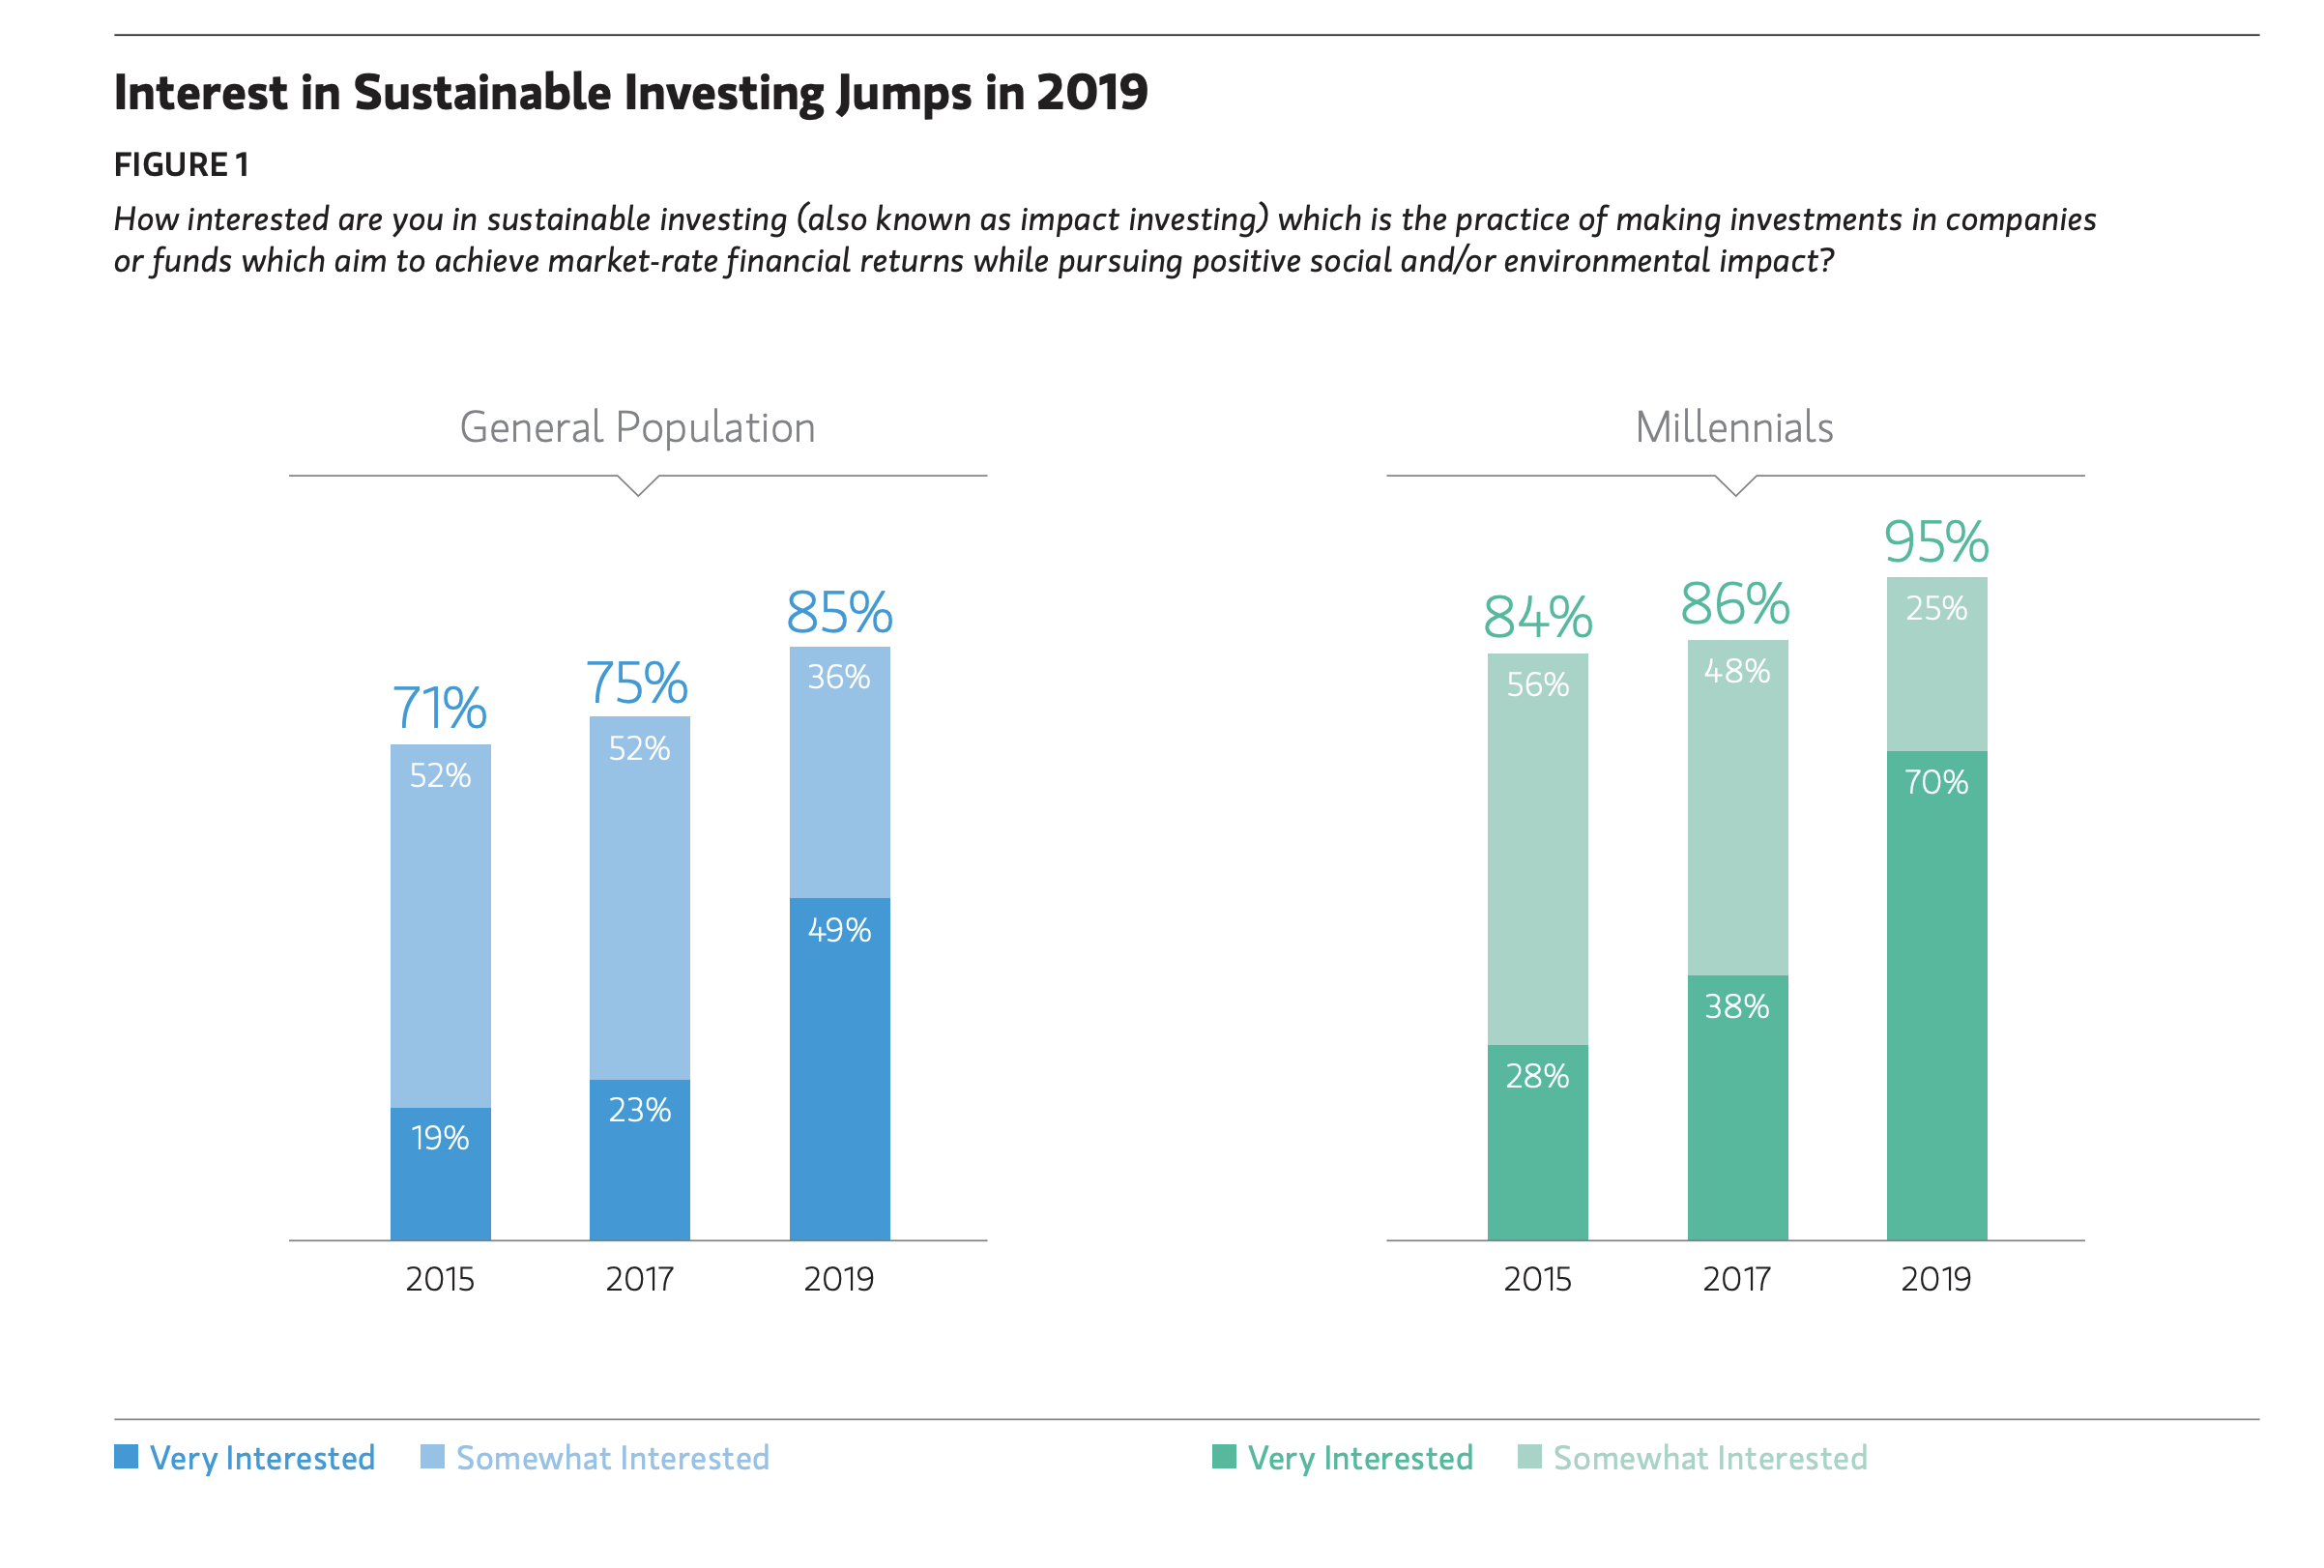 Interest in sustainable investing is growing